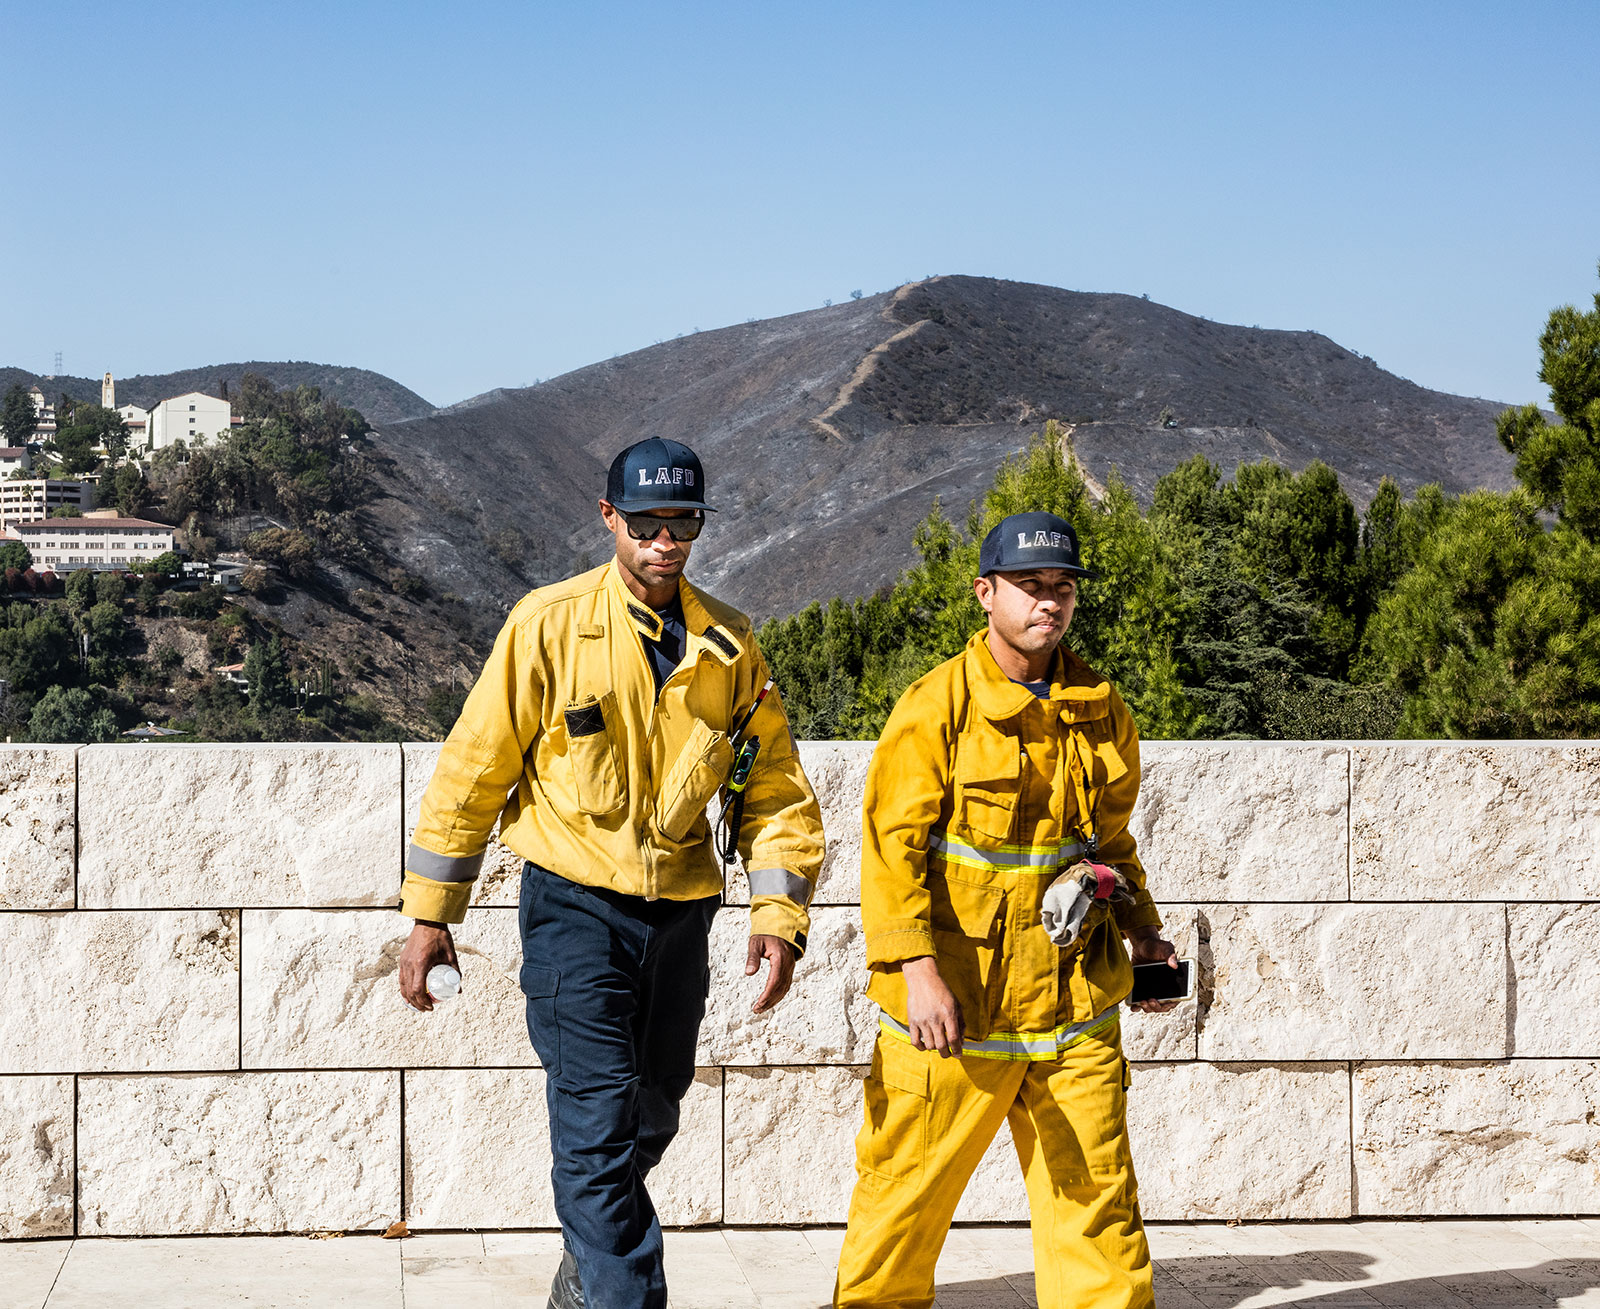 Response to the Getty Fire came from multiple agencies near and far. LAFD led the efforts.